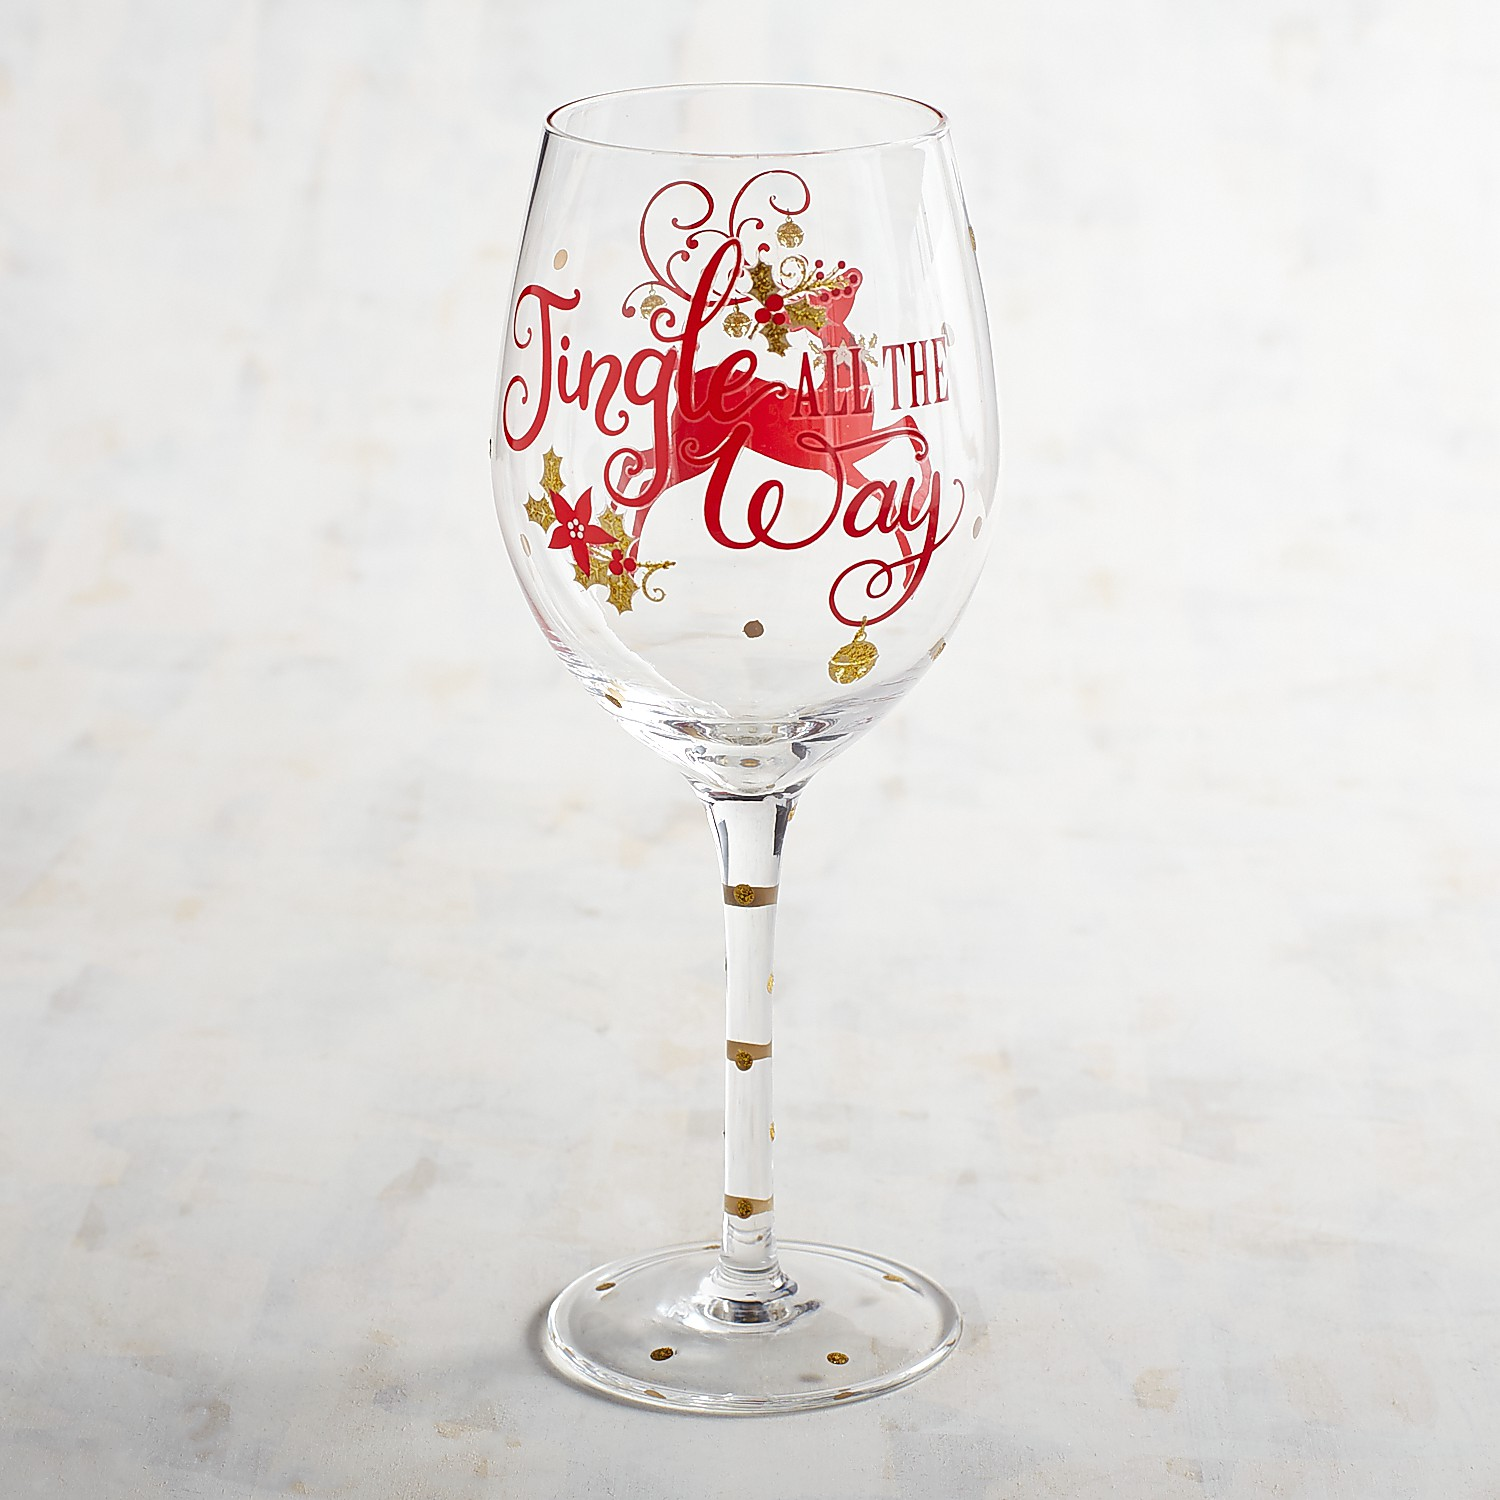 Jingle All the Way Hand-Painted Wine Glass